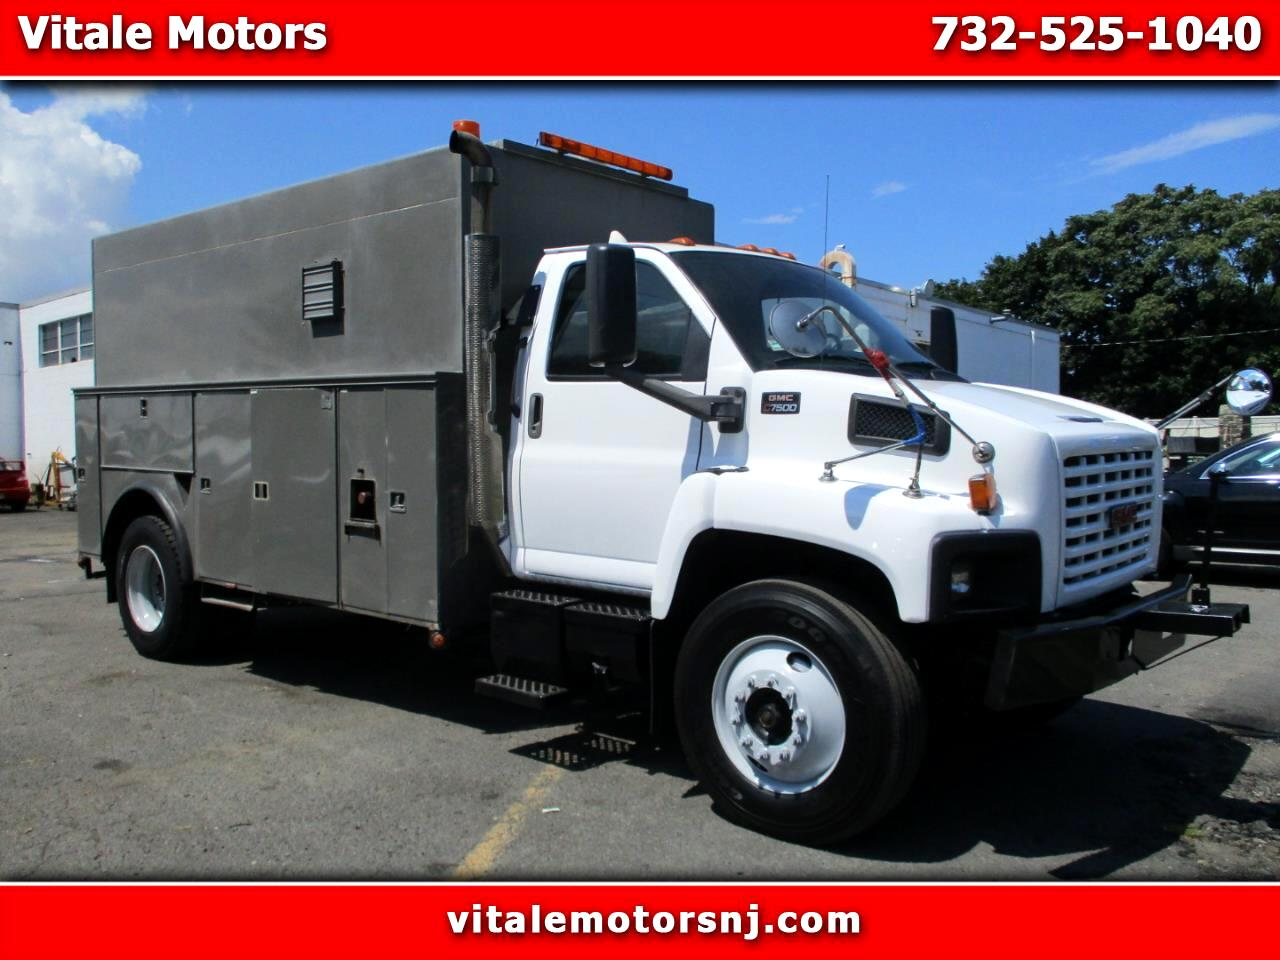 2006 GMC C7C042 C 7500 UTILITY W/ HEAVY DUTY WINCH & OUTRIGGERS